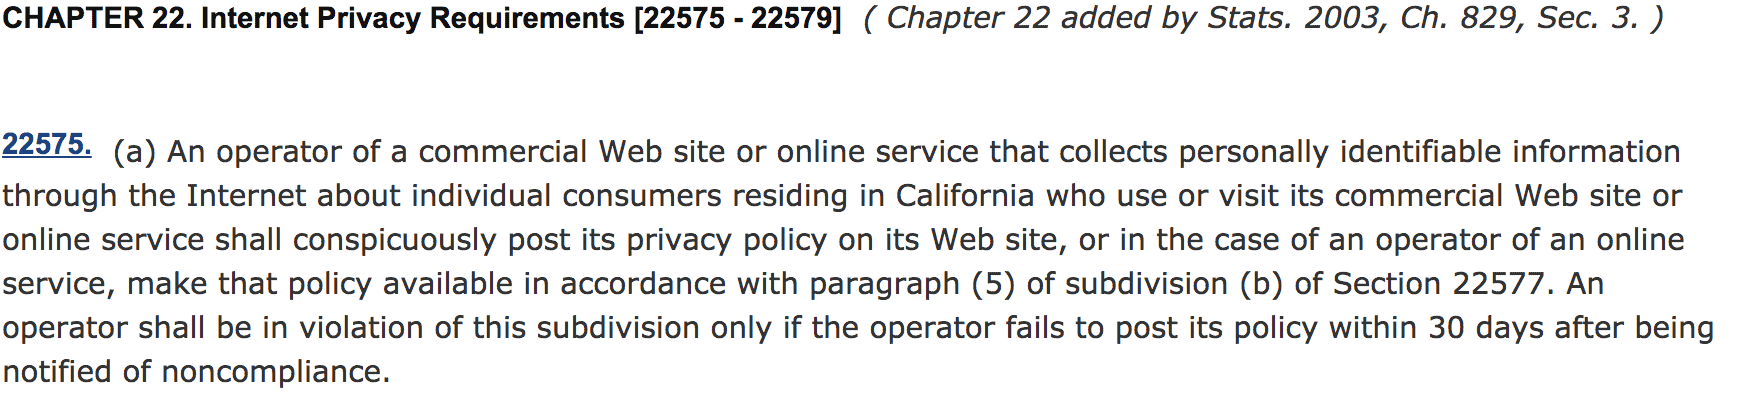 CalOPPA requires the disclosure of a Privacy Policy.